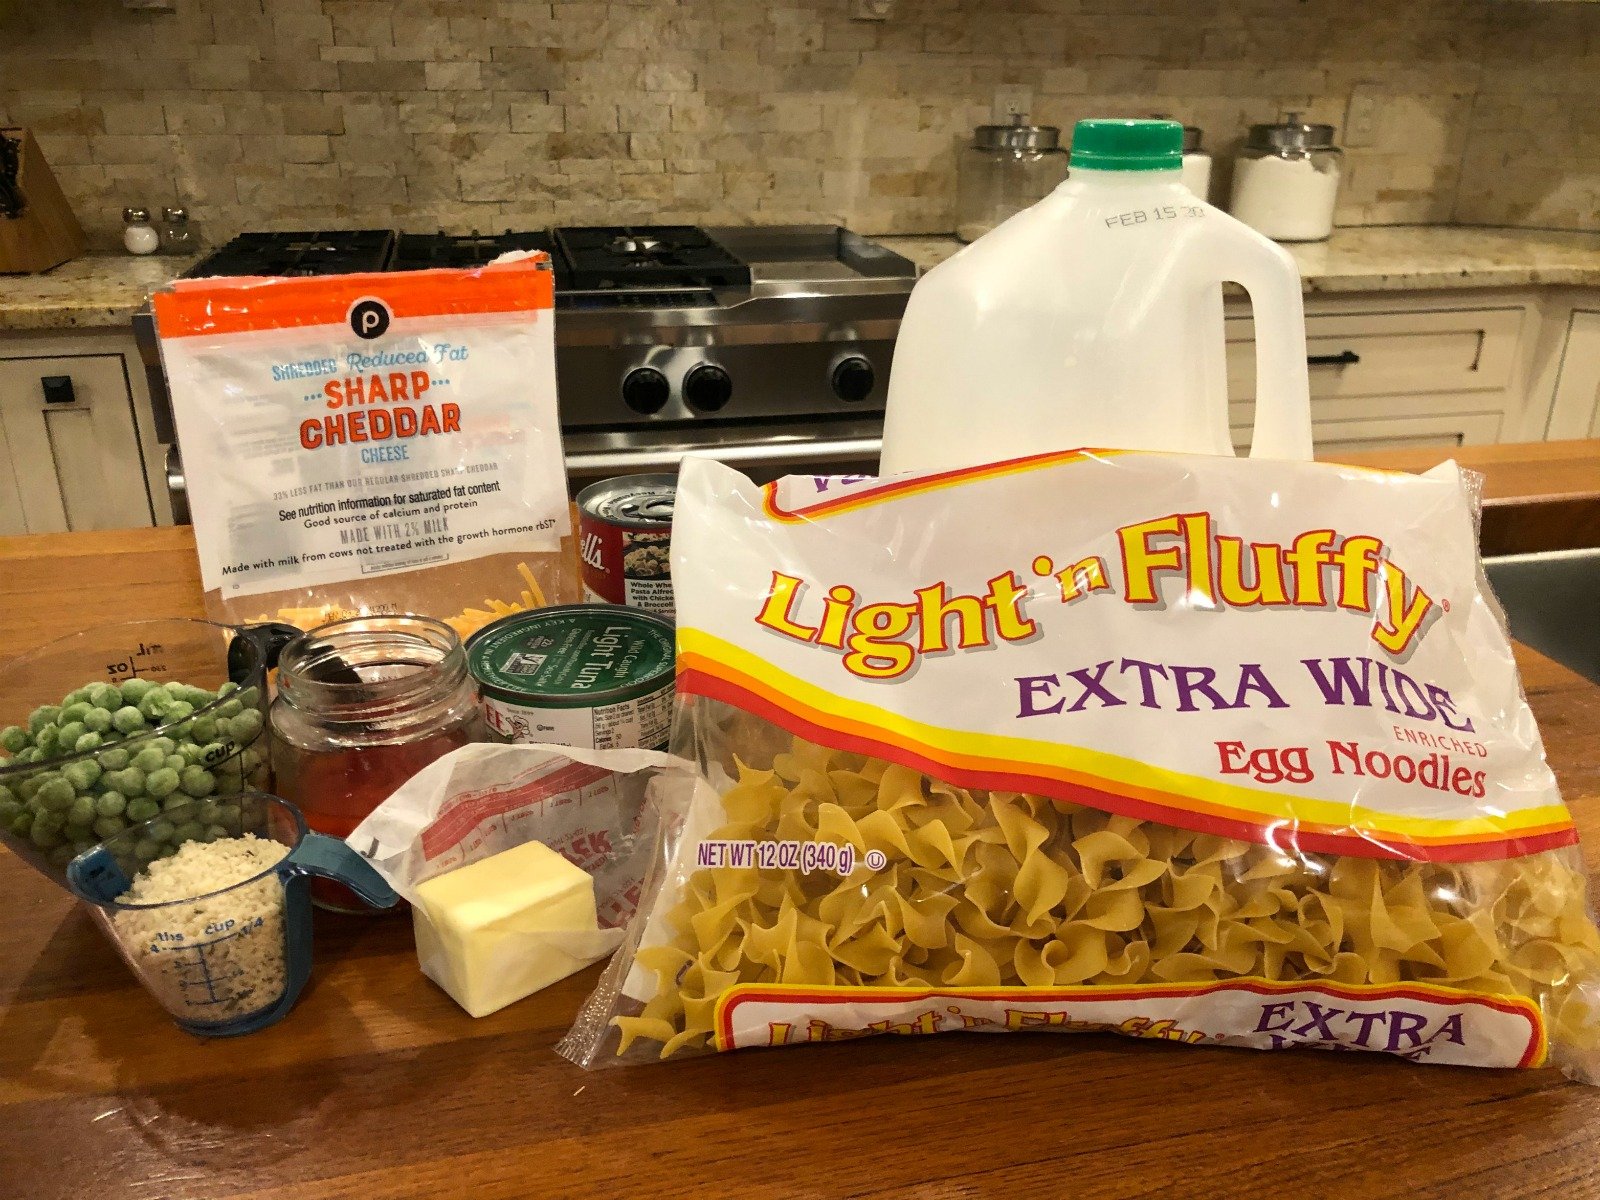 Pick Up Light 'n Fluffy Egg Noodles At Publix And Enjoy Your Favorite Egg Noodles! on I Heart Publix